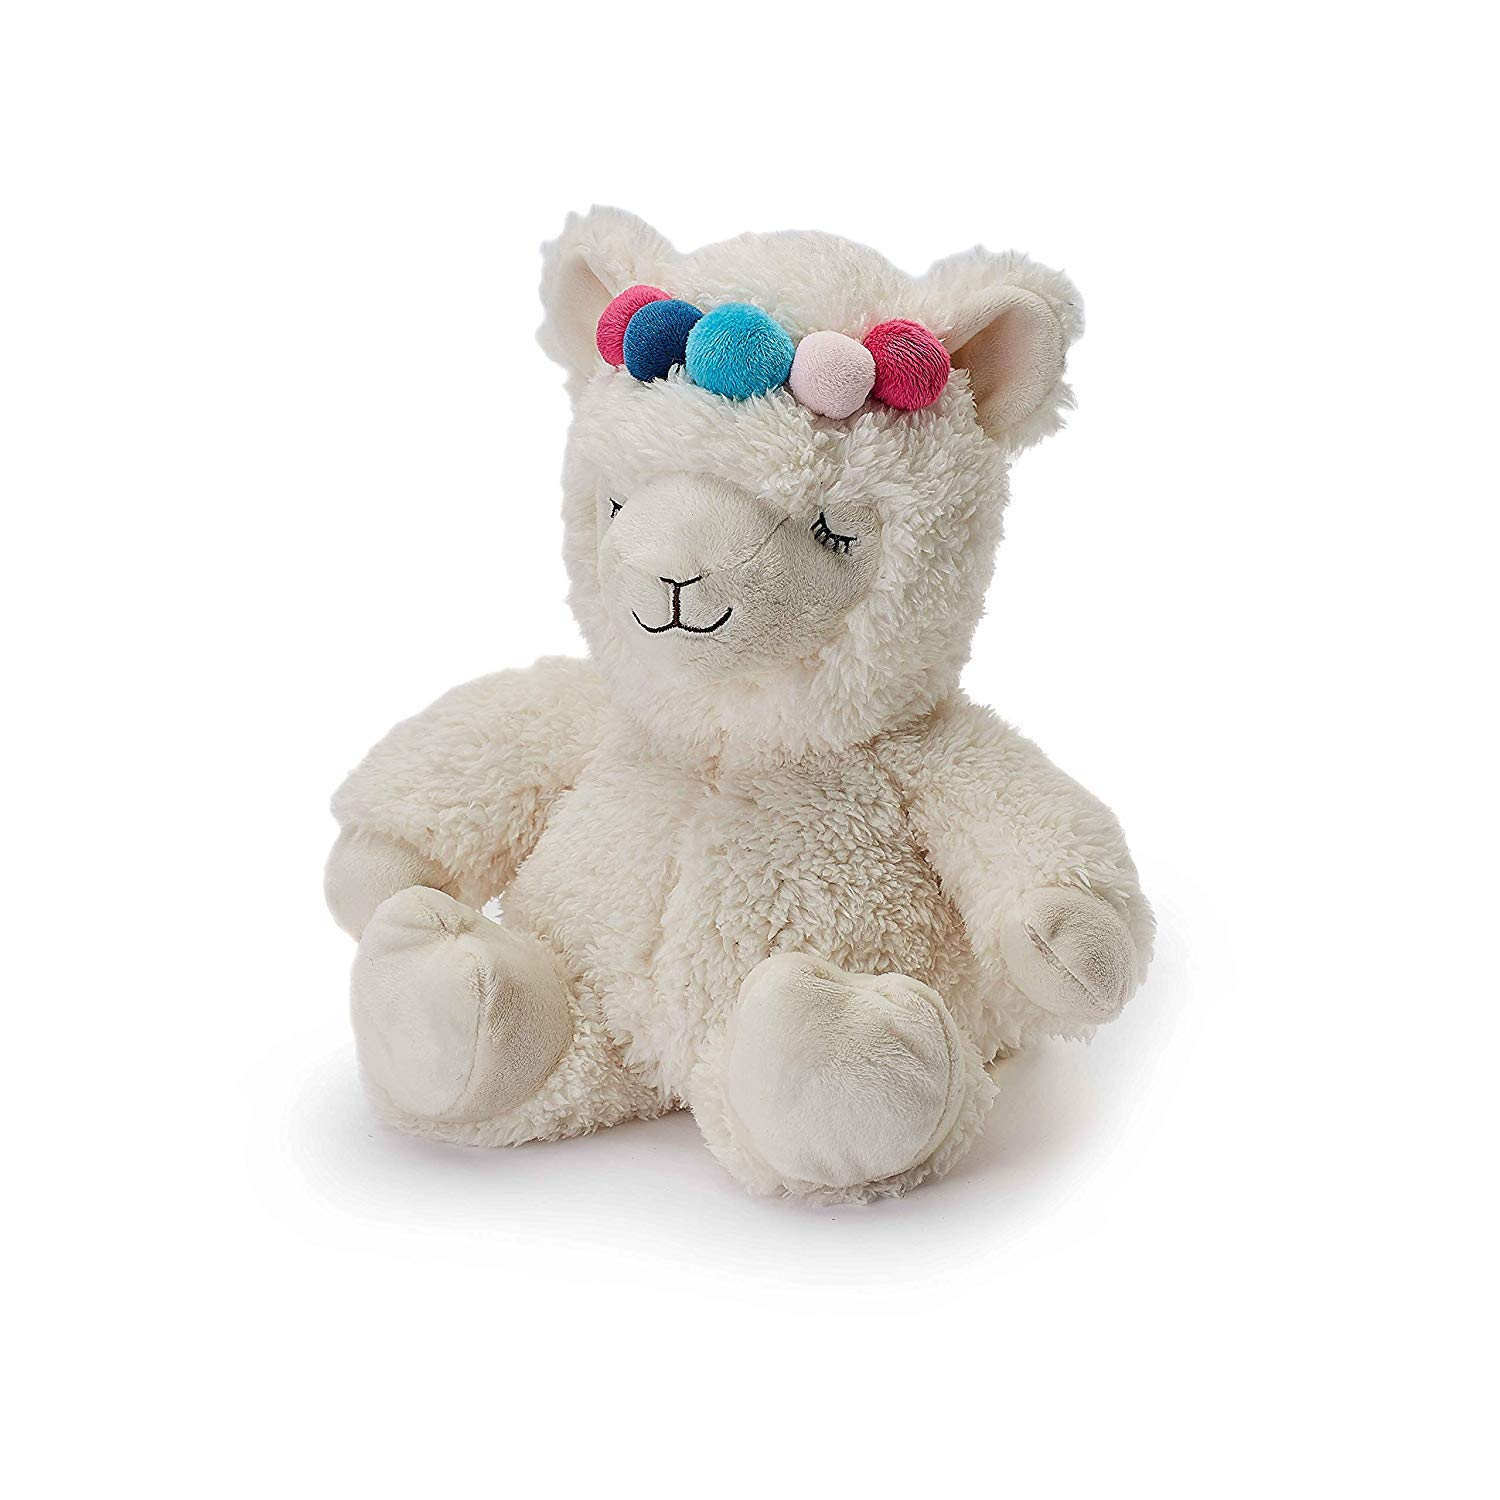 Warmies Plush Heat Up Microwavable Soft Cuddly Toys with A Lavender Scent, Llama by warmies